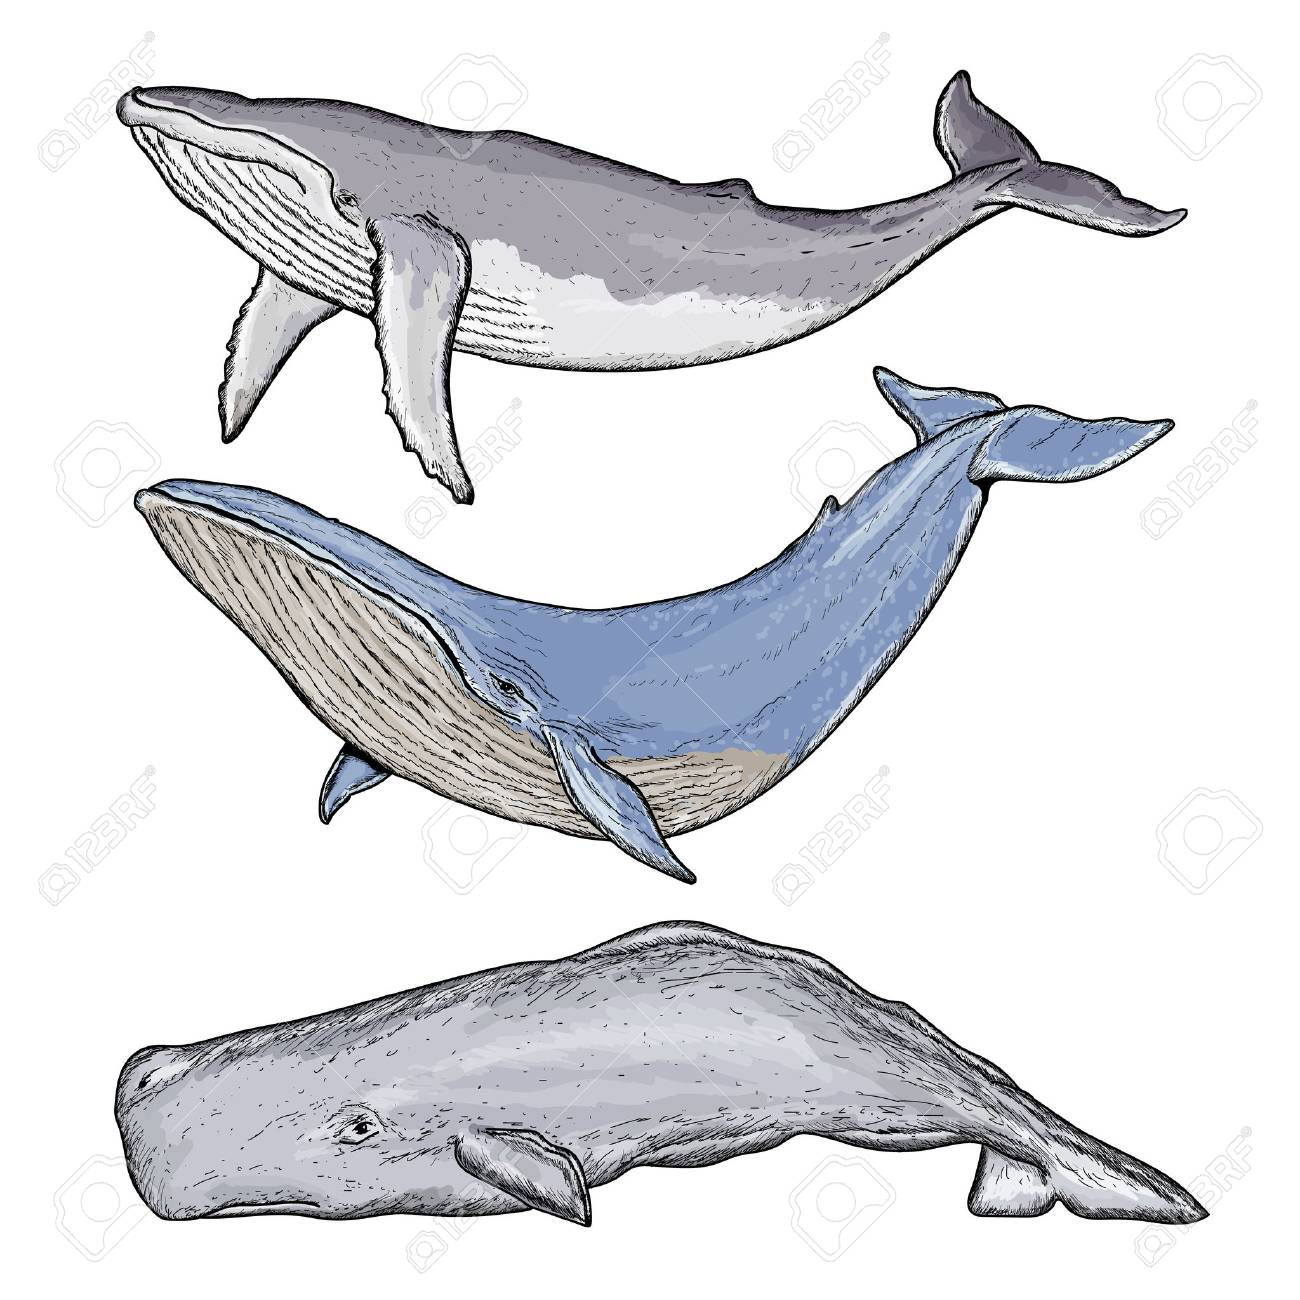 whales collection humpback whale blue whale whale hand